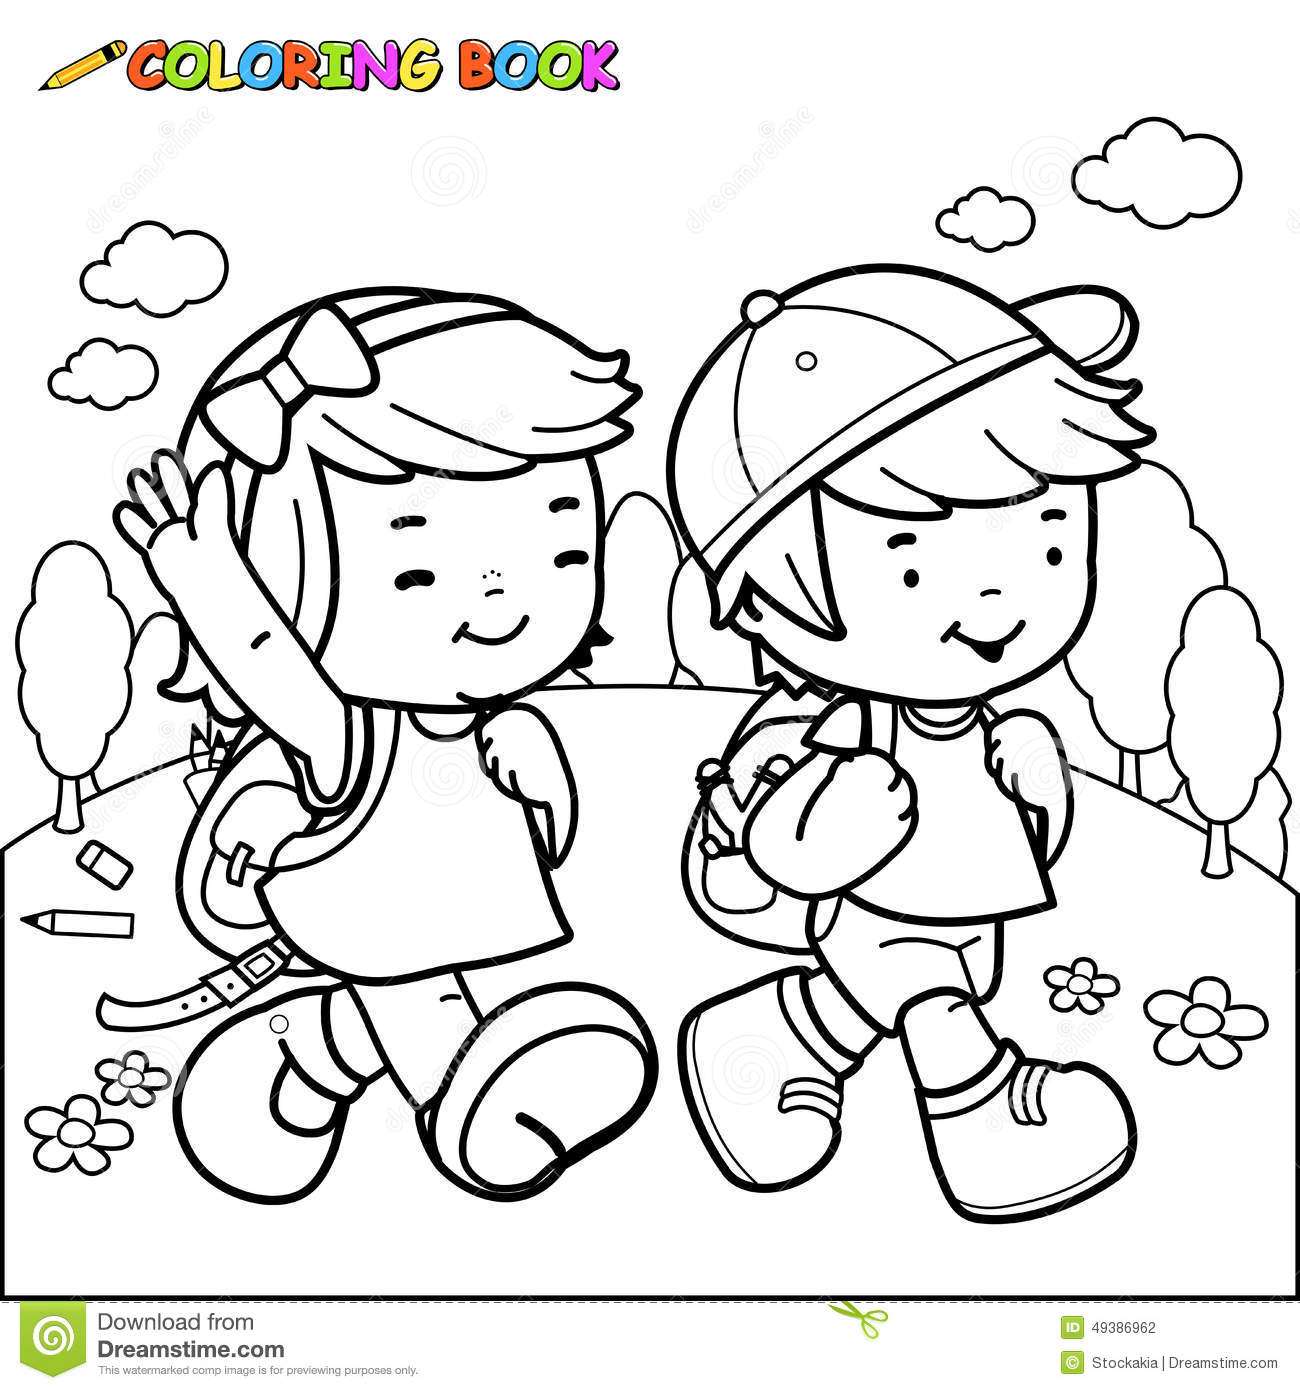 People Walking Carrying Things Coloring Pages